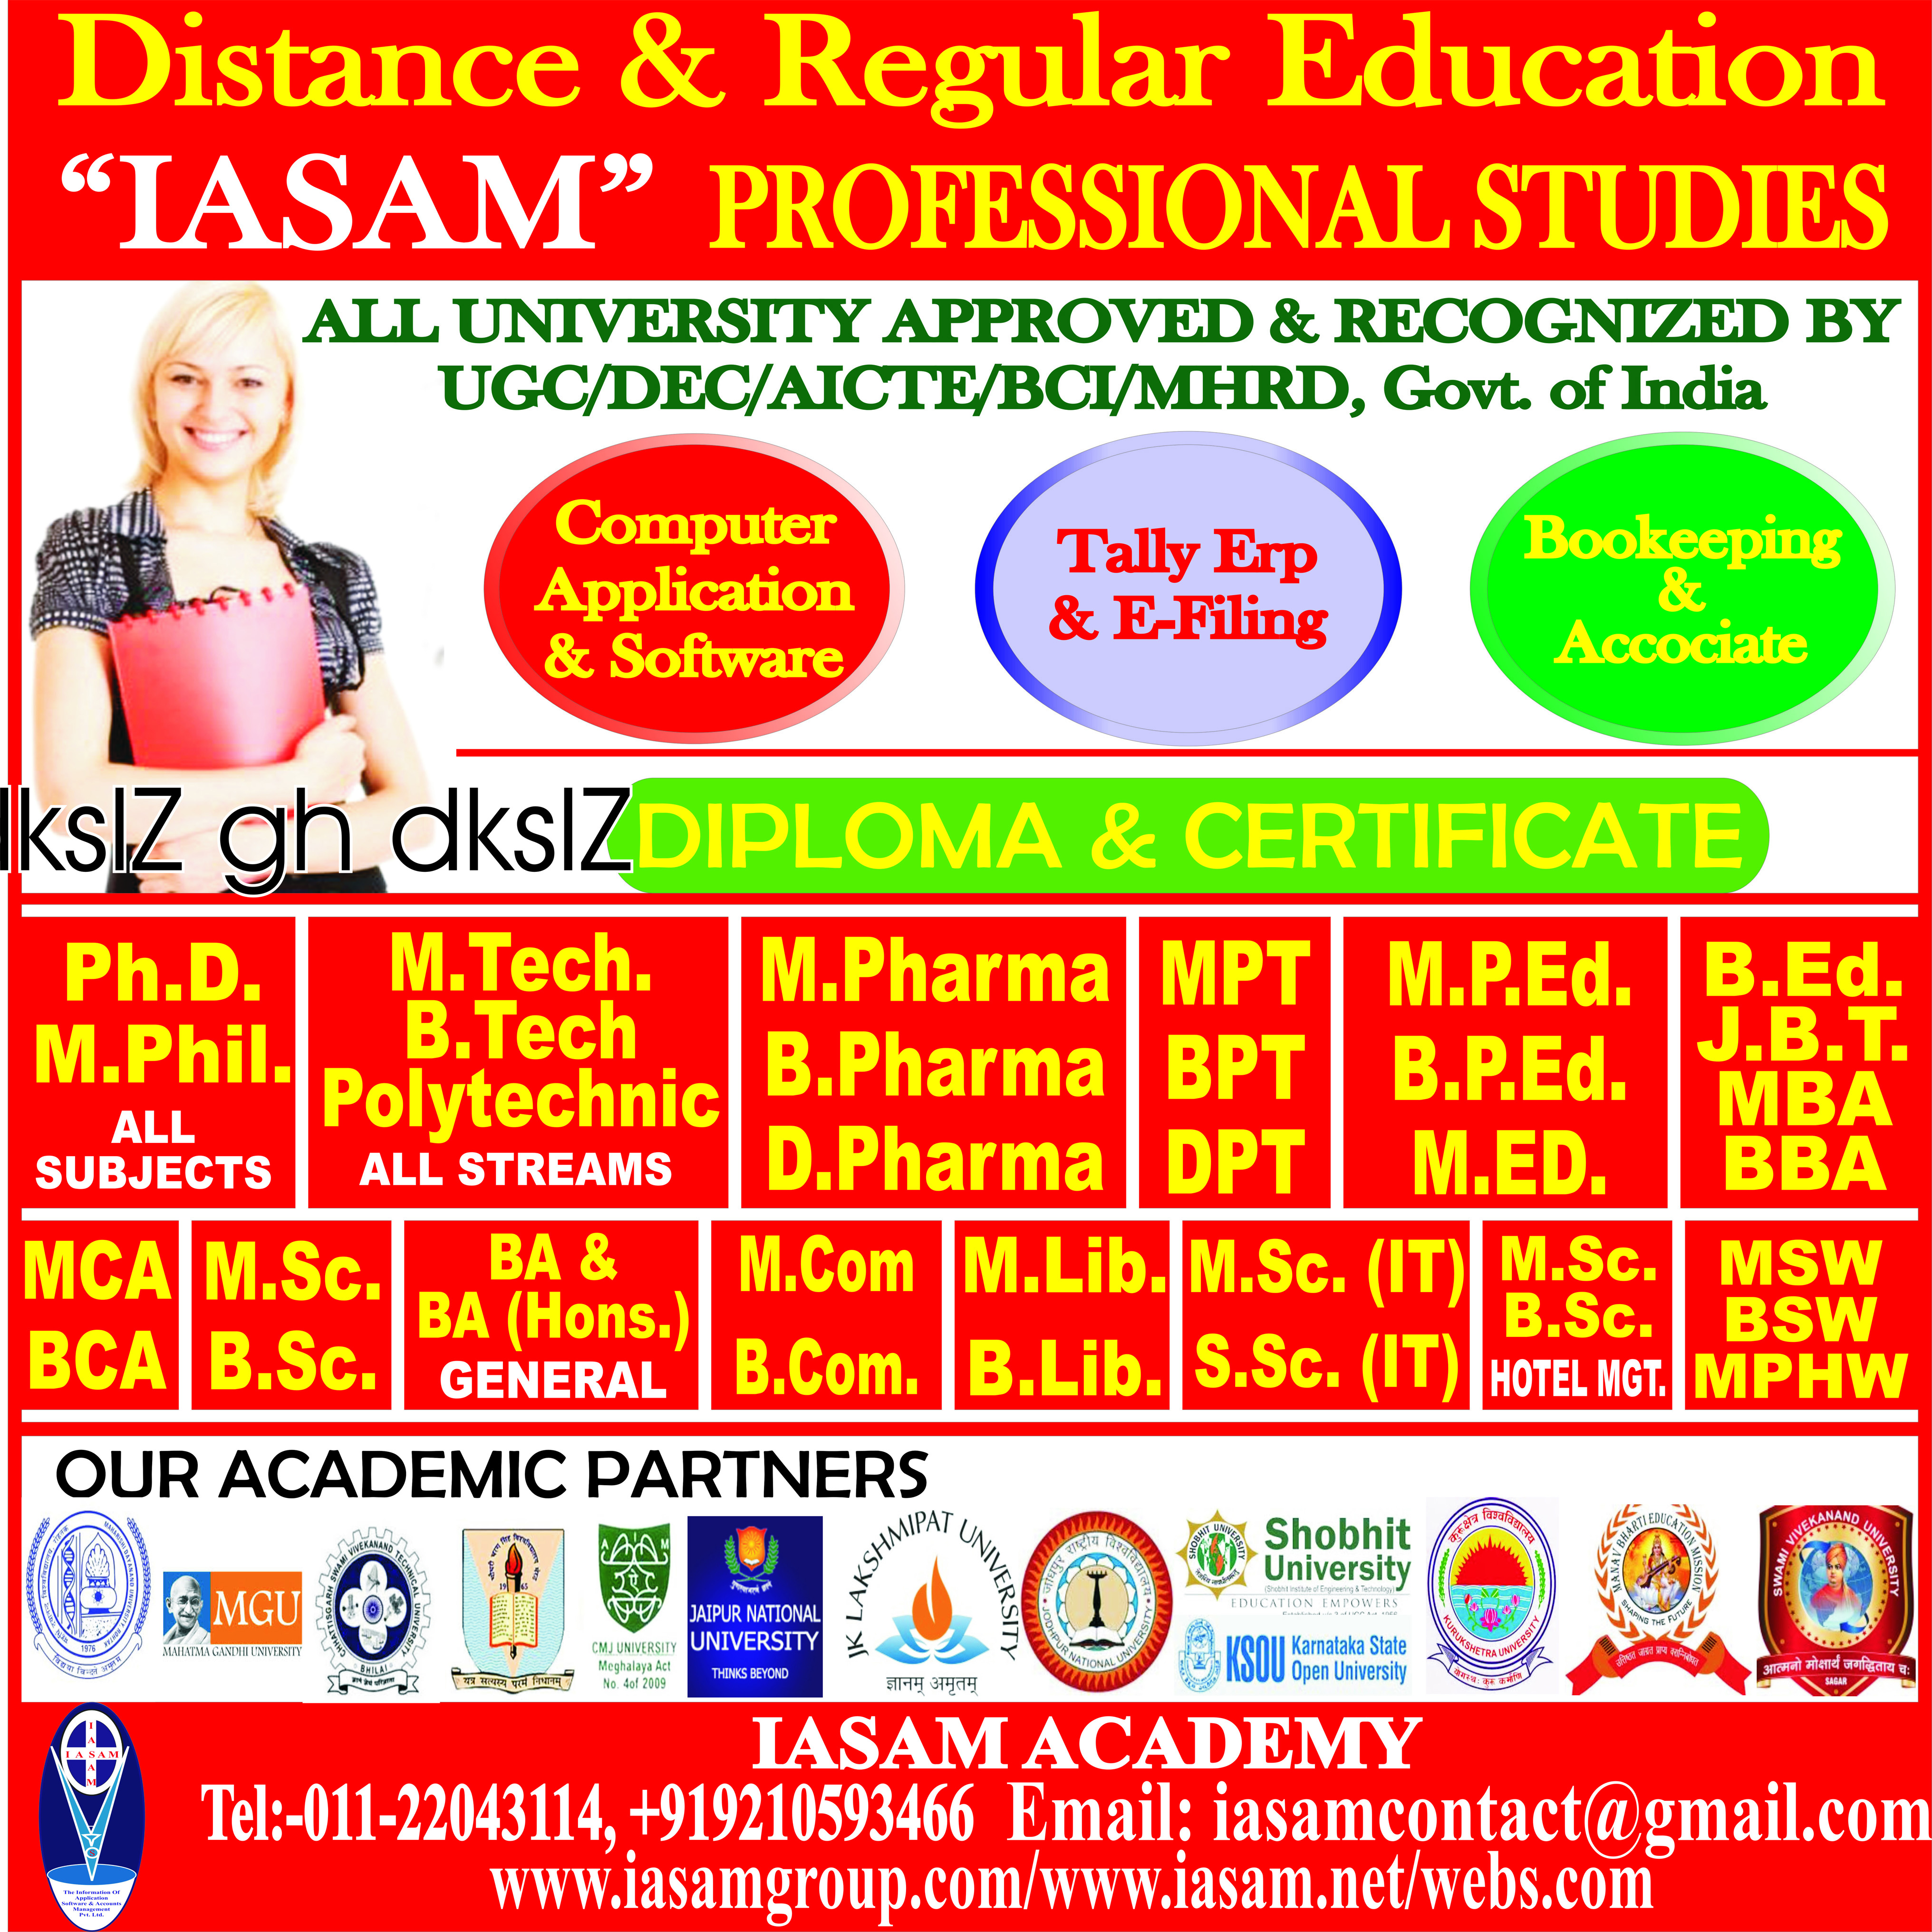 Distance & Regular Education,All University Approved & Recognized By UGC/DEC/AICTE/BCI/ MHRD,  Govt. Of India